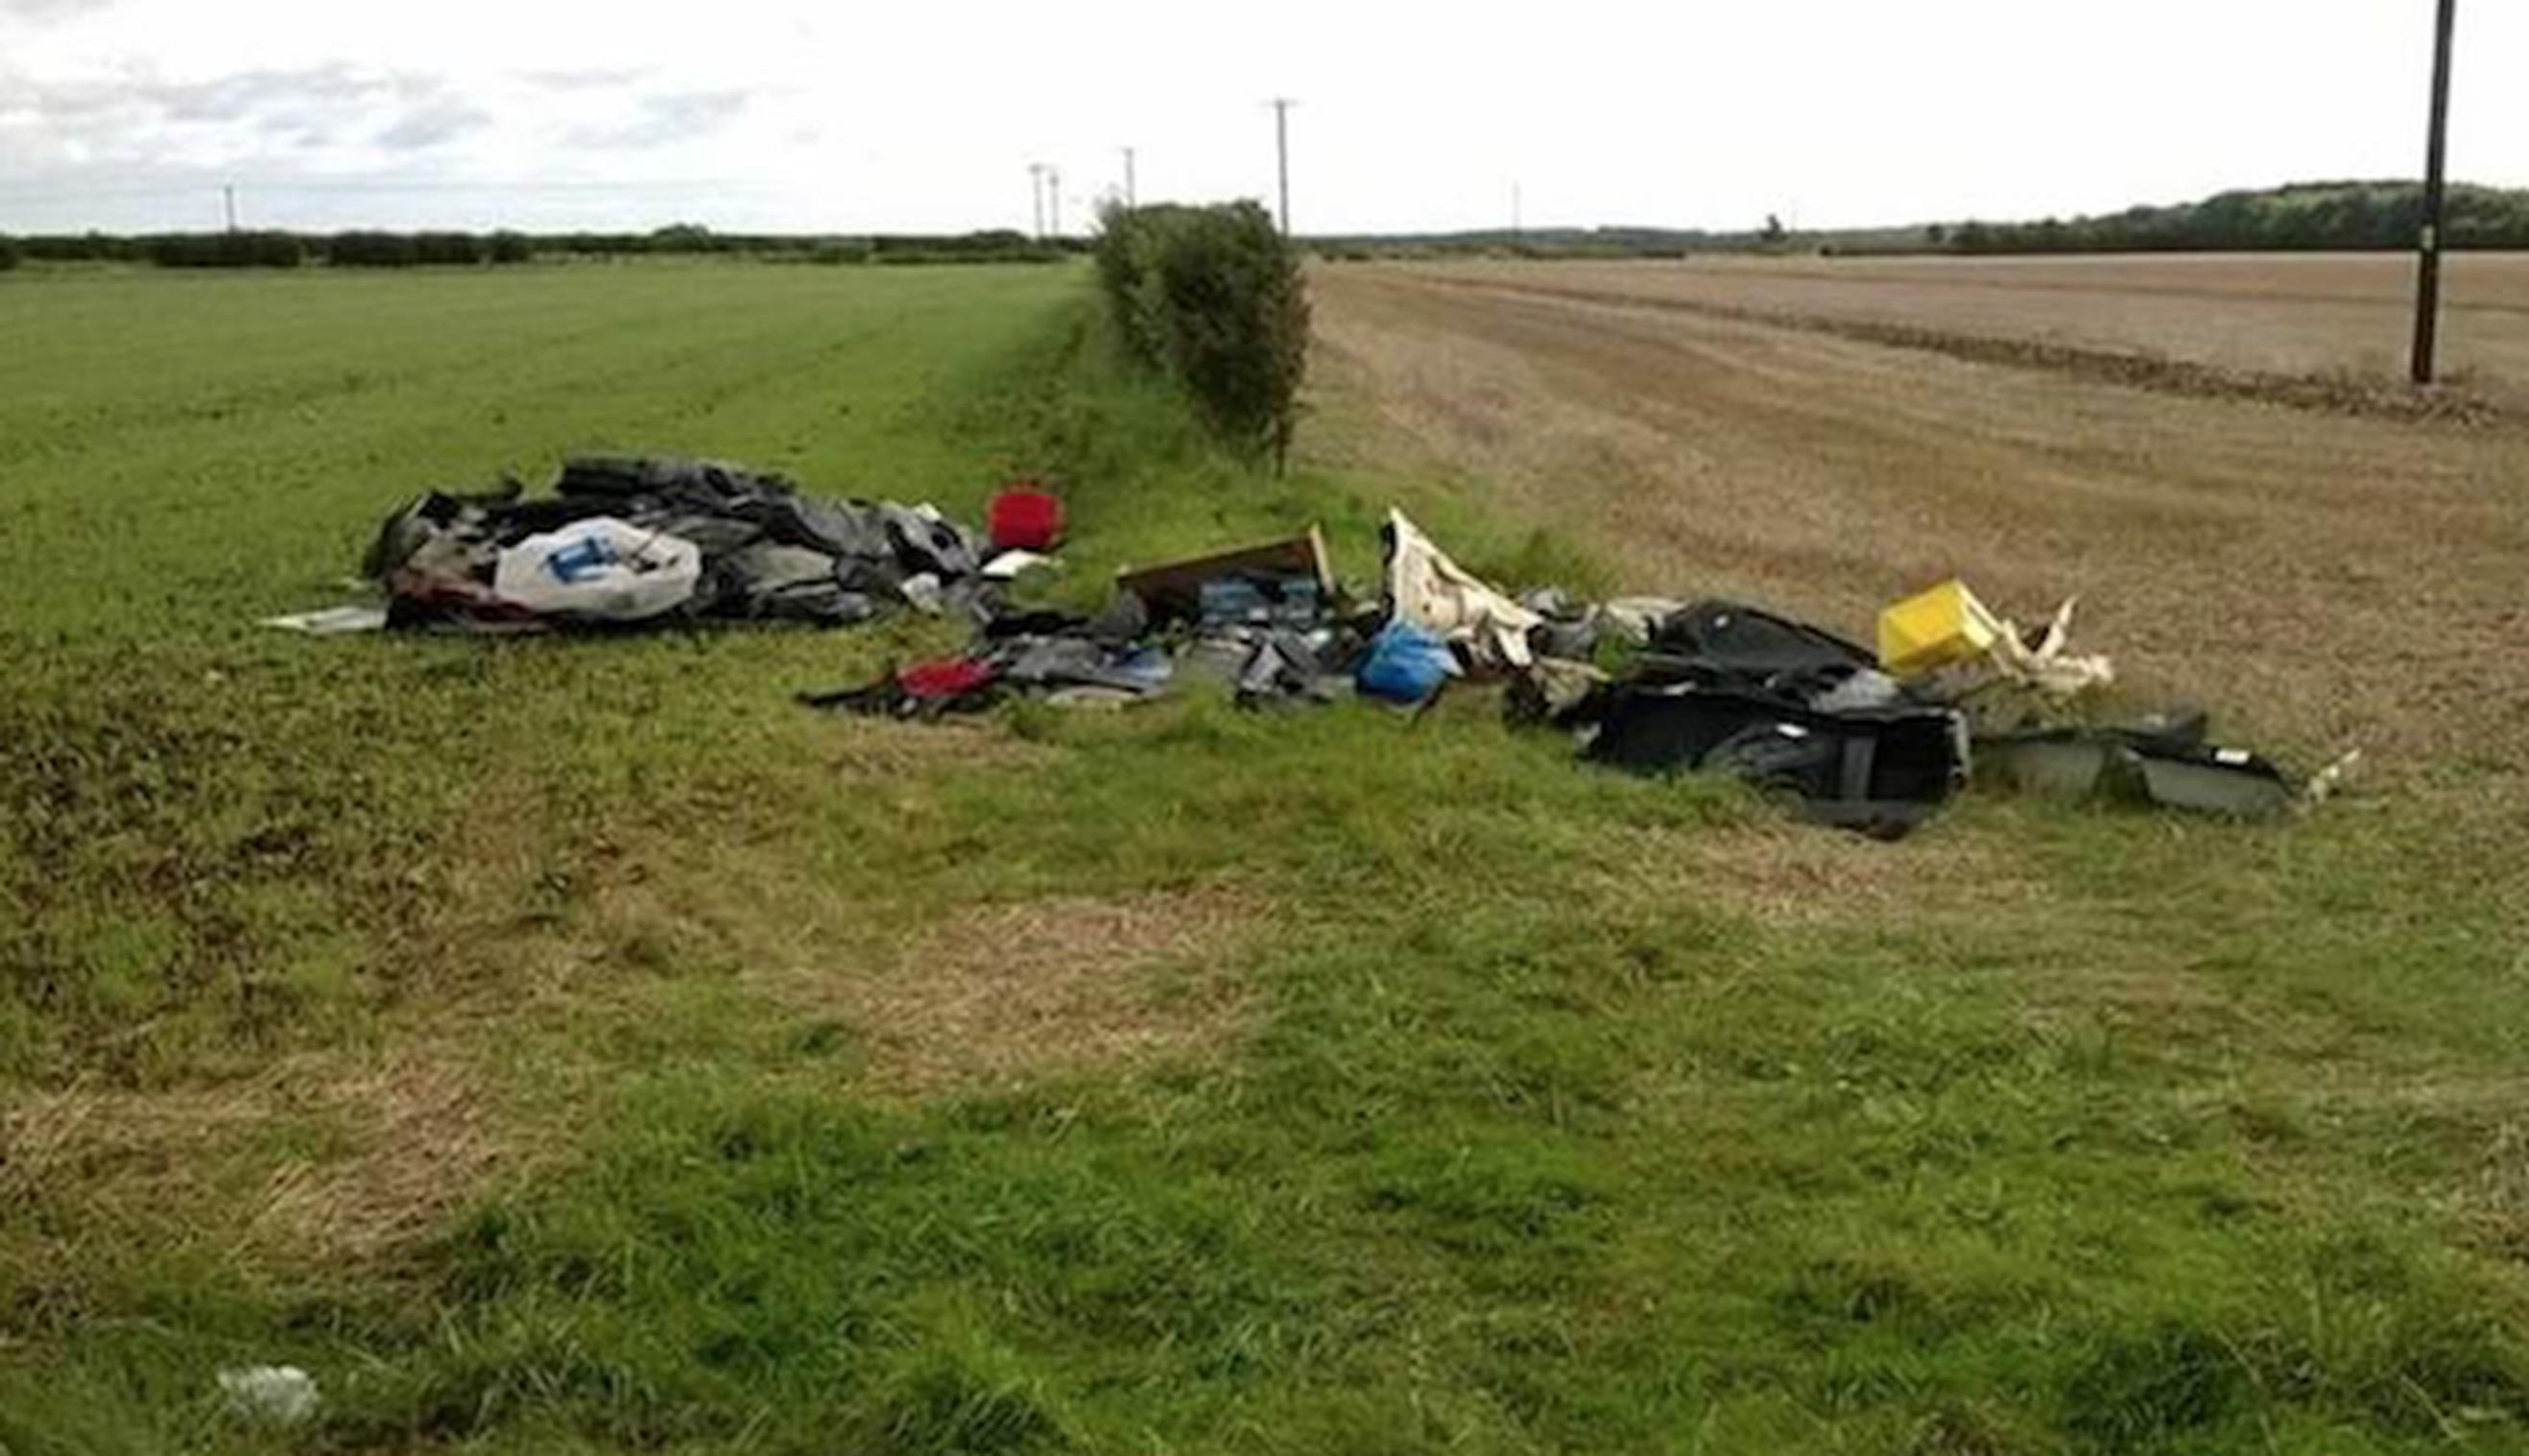 UKPC fined £5.7k for obstructing council's flytipping investigation